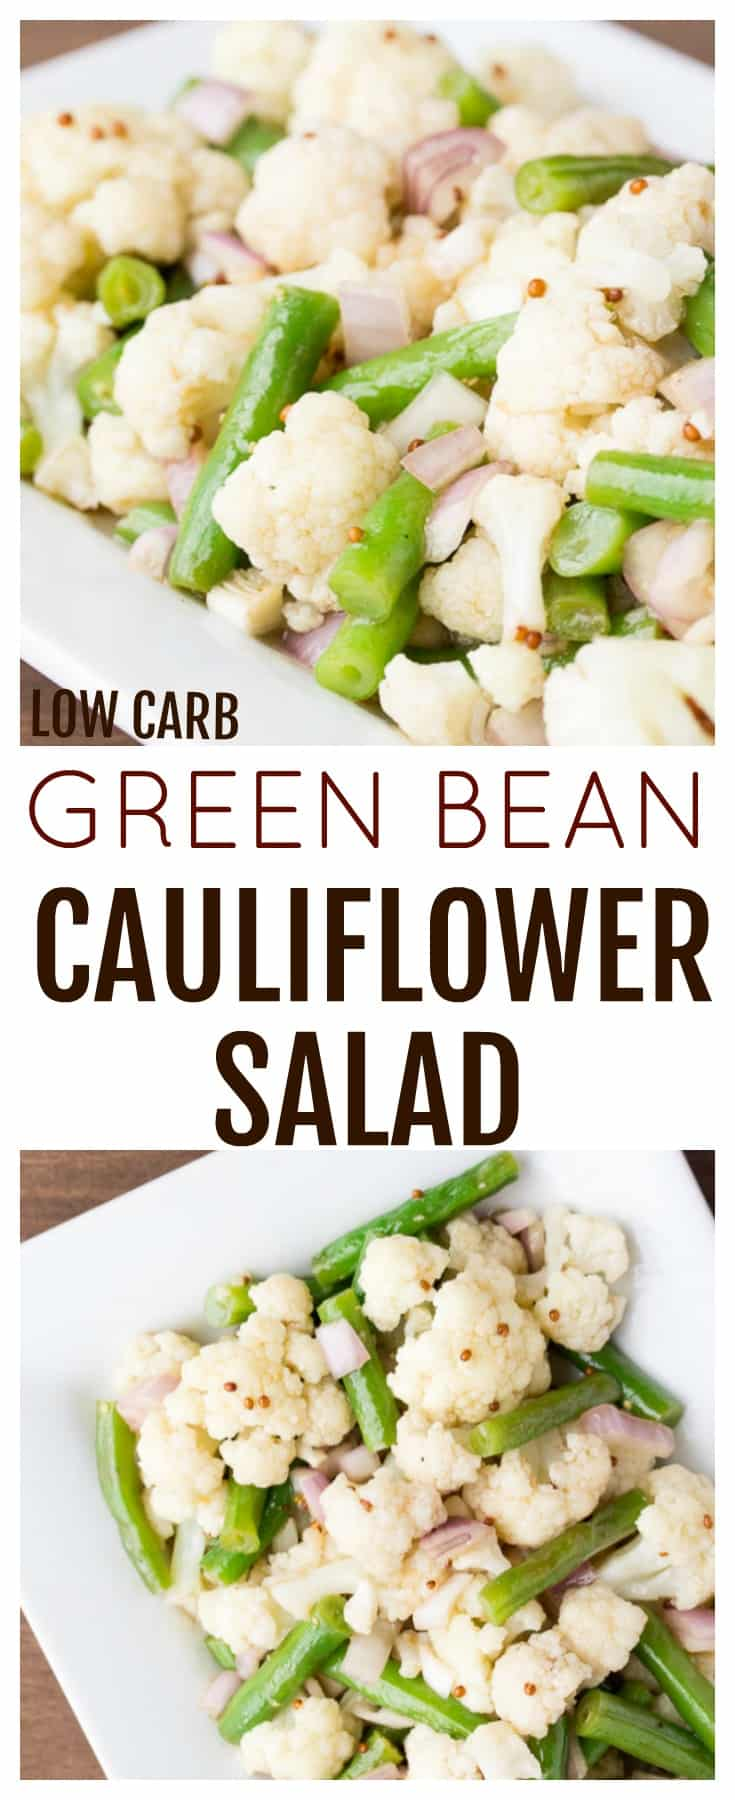 This Green Bean Cauliflower Salad recipe is the perfect side dish recipe for all your summer cookouts! It's naturally low carb, keto friendly, and suitable for those on a gluten free diet, as well!   #dlbrecipes #lowcarb #glutenfree #sidedish #cauliflowersalad